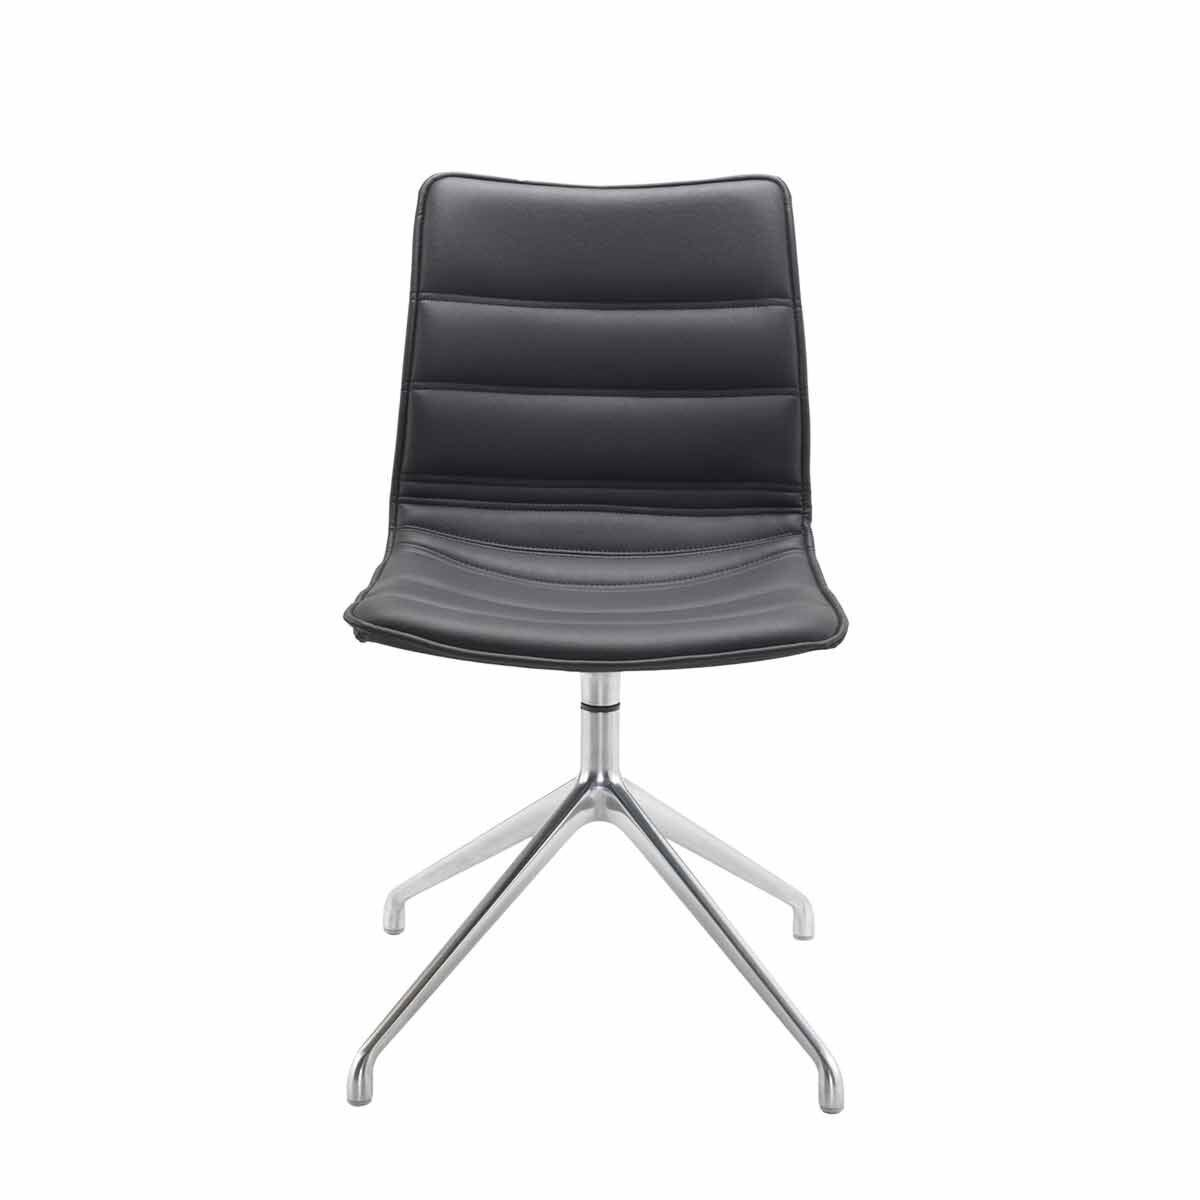 TC Office Milan Chair with 4 Star Base